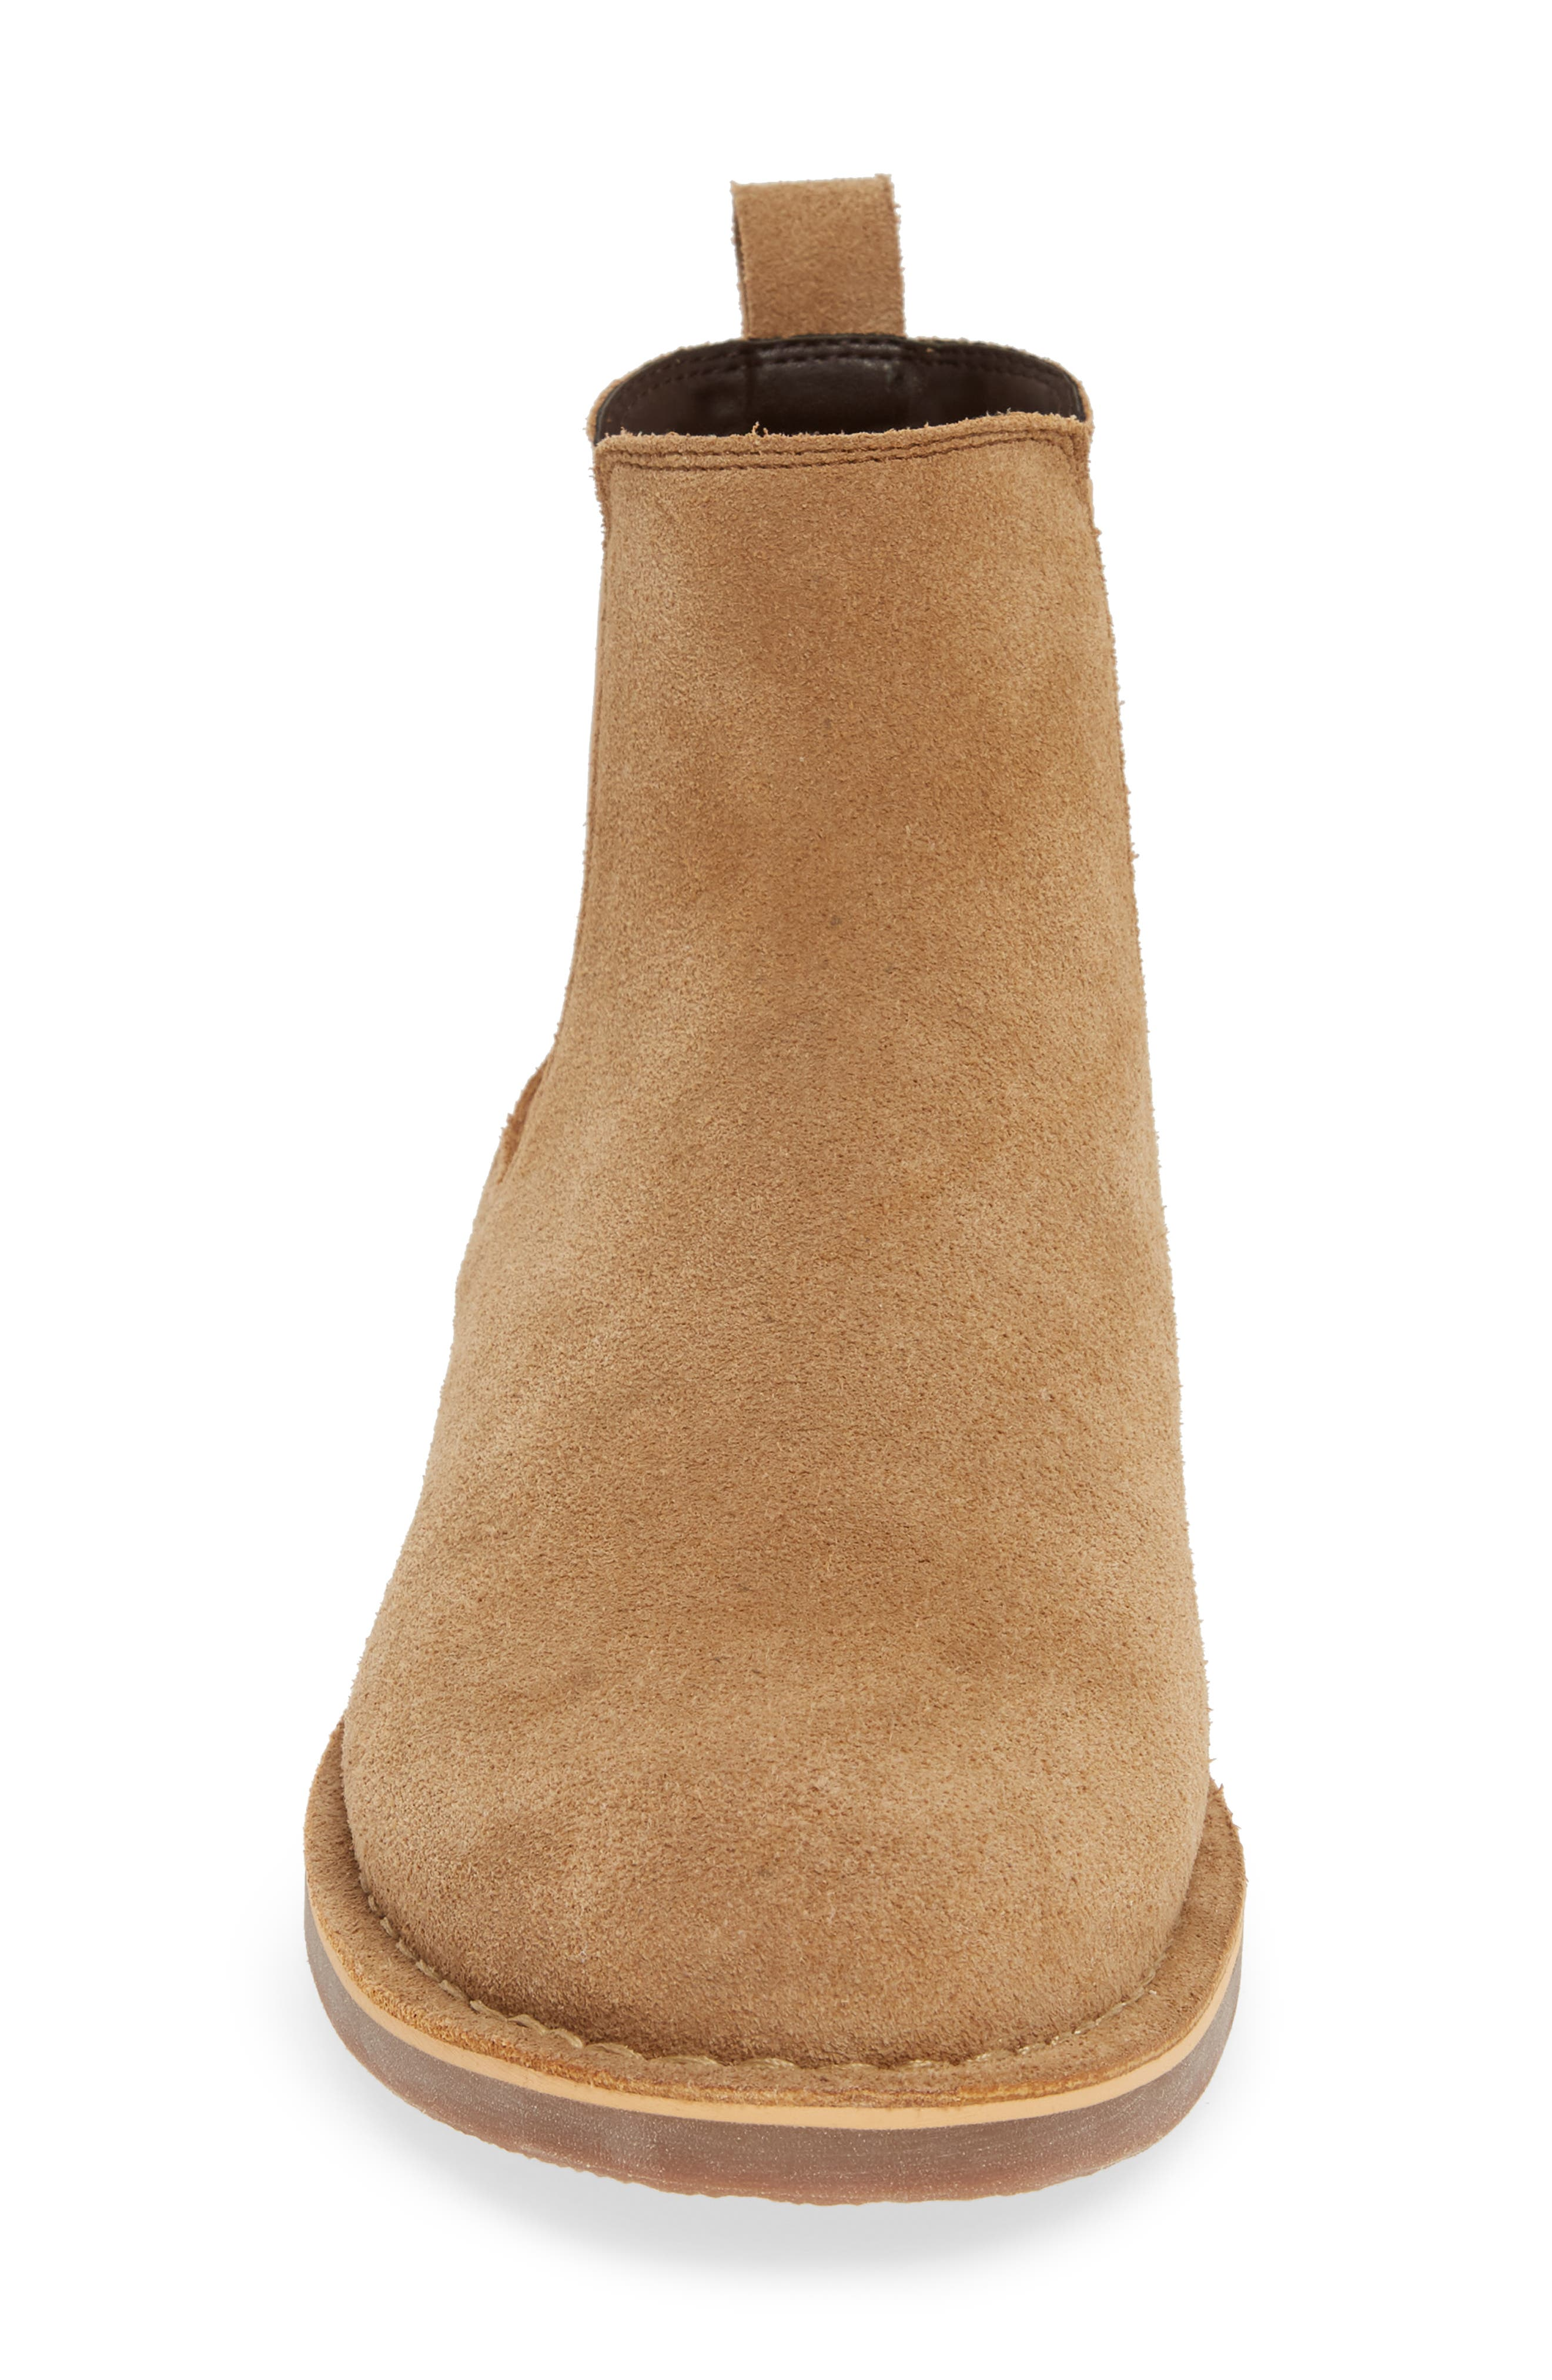 THE RAIL, Payson Chelsea Boot, Alternate thumbnail 4, color, SAND SUEDE